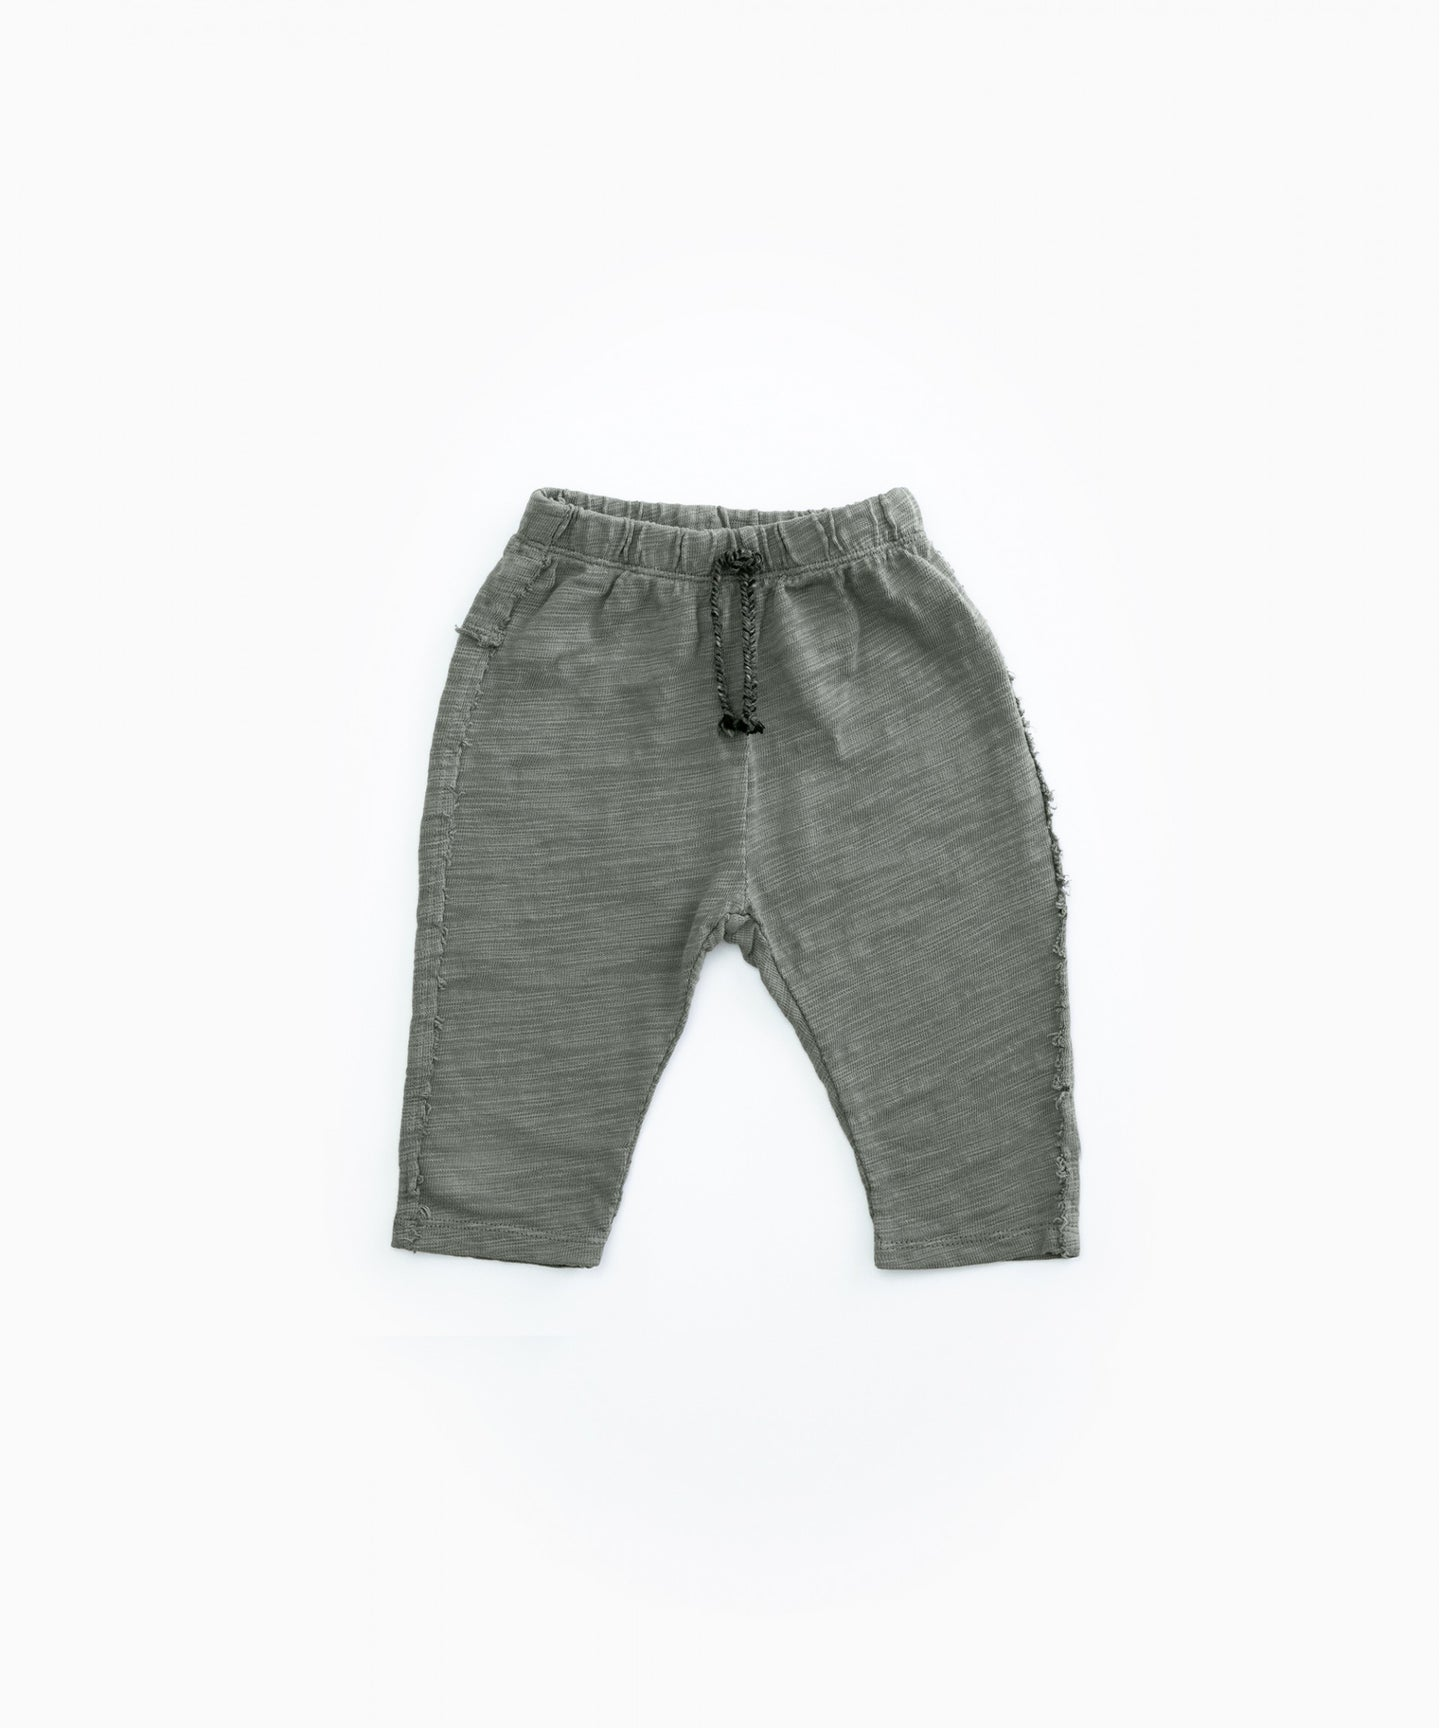 Cotton Joggers - Carving